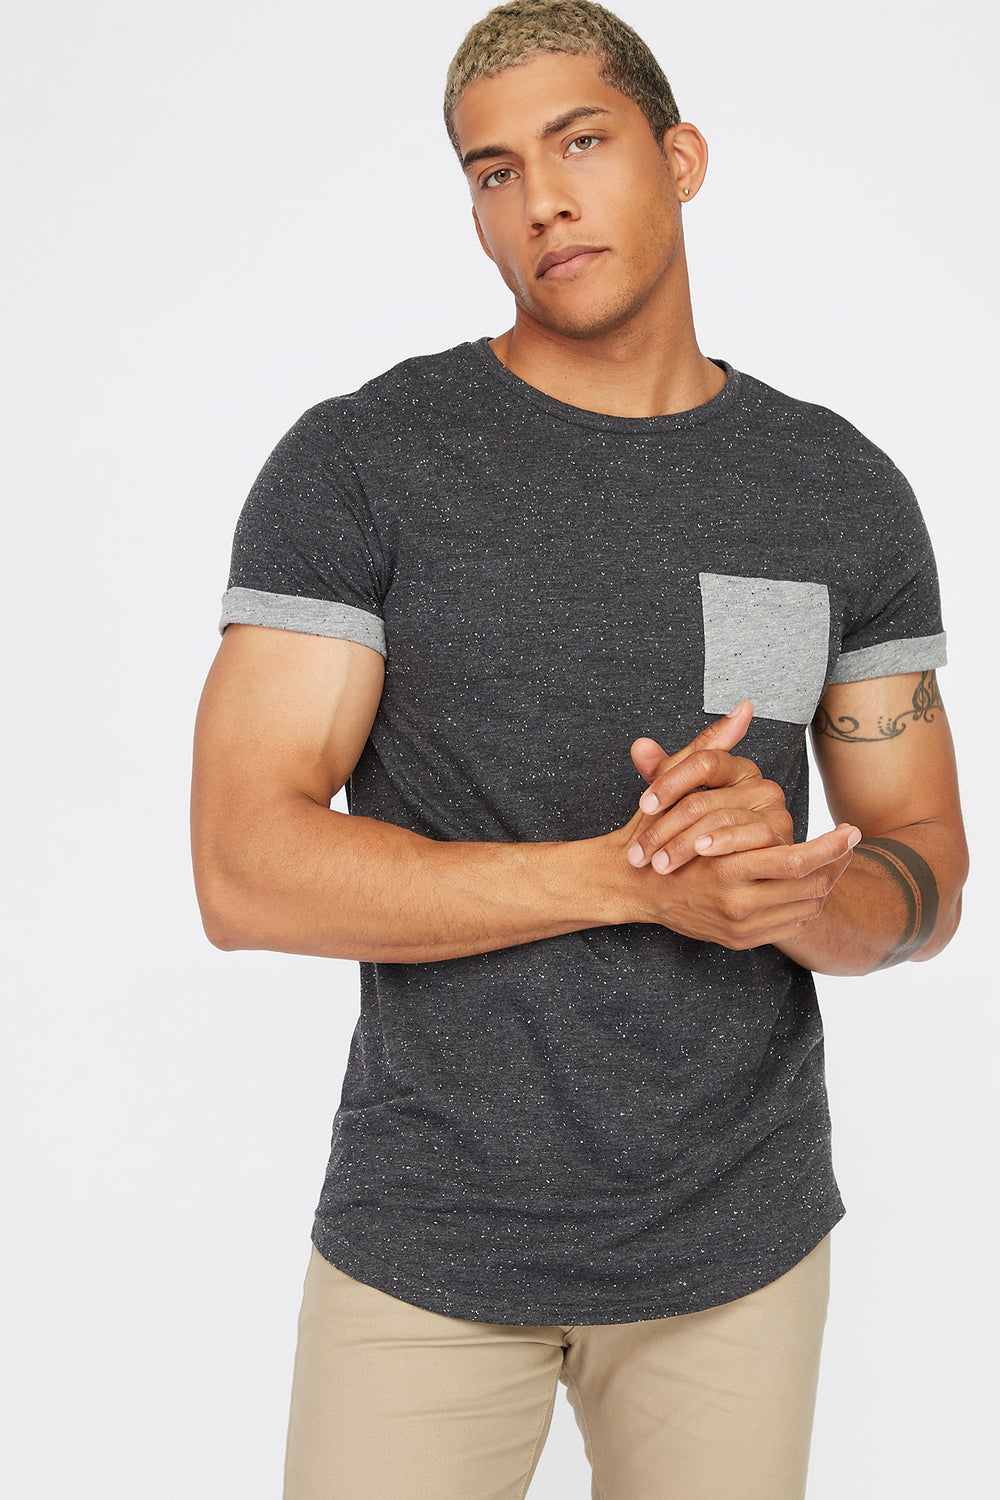 Speckled Cuffed Sleeve T-Shirt Charcoal